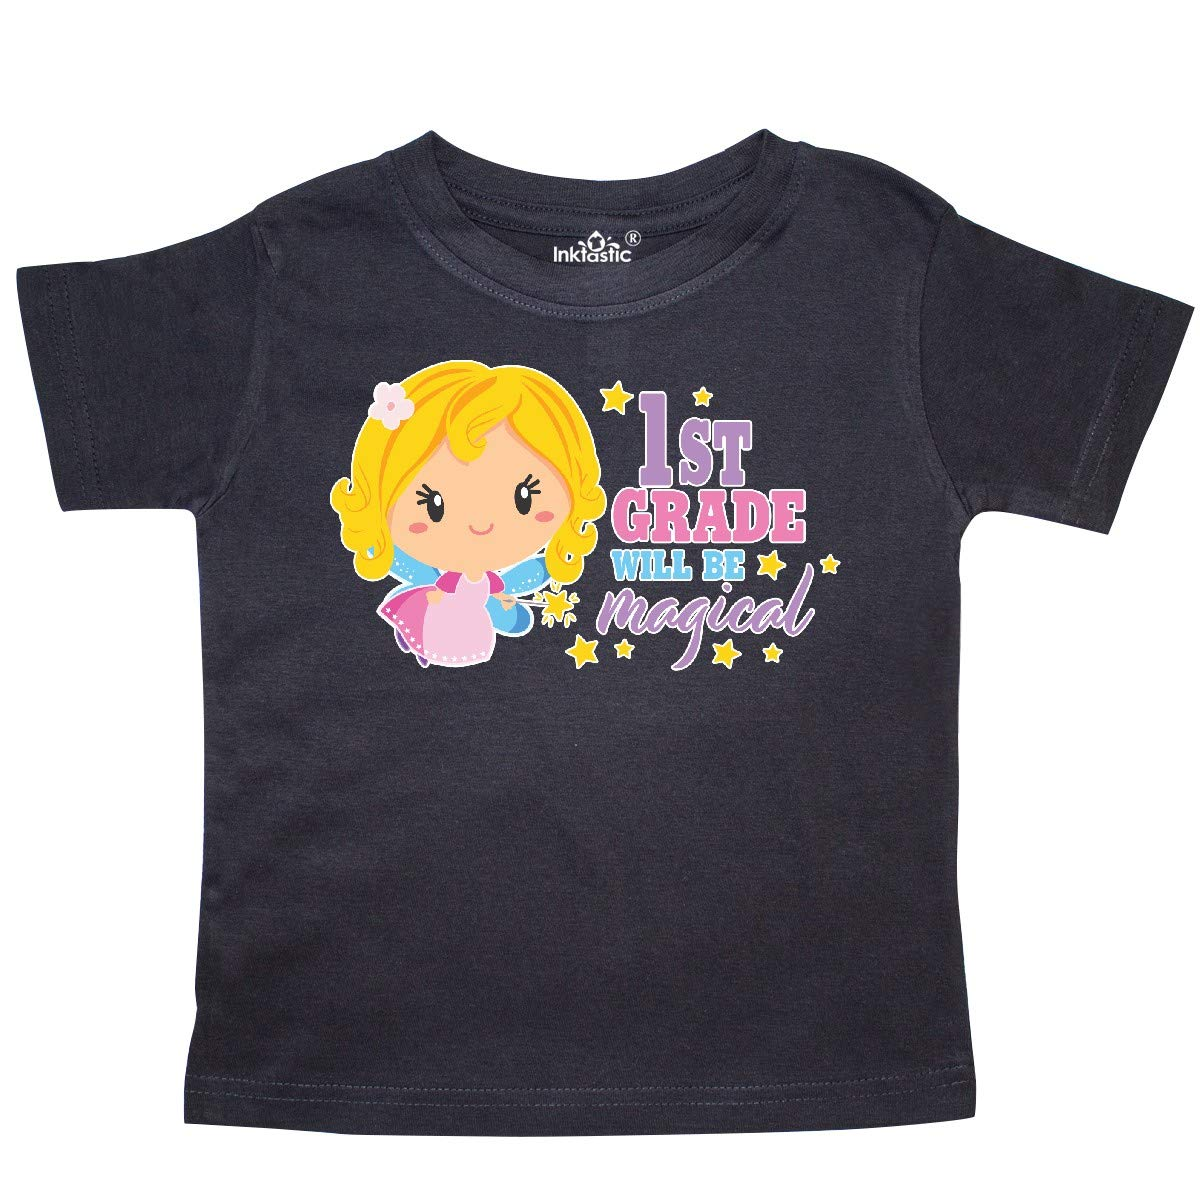 inktastic 1st Grade Will Be Magical with Blonde Haired Fairy Toddler T-Shirt